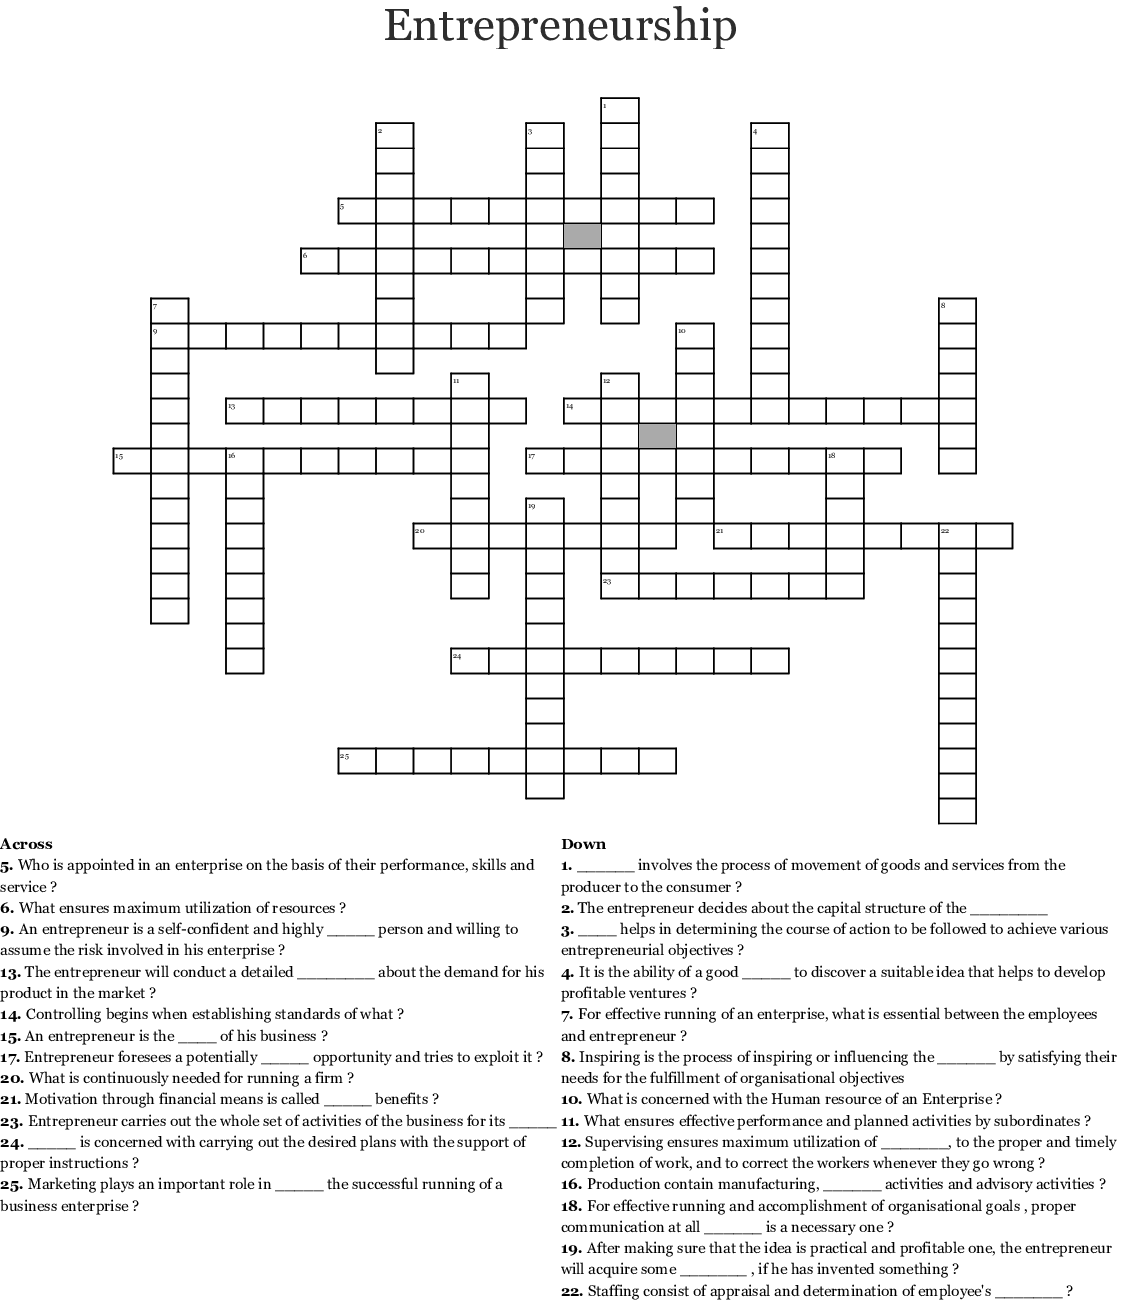 Hr Crossword Puzzles With Answers